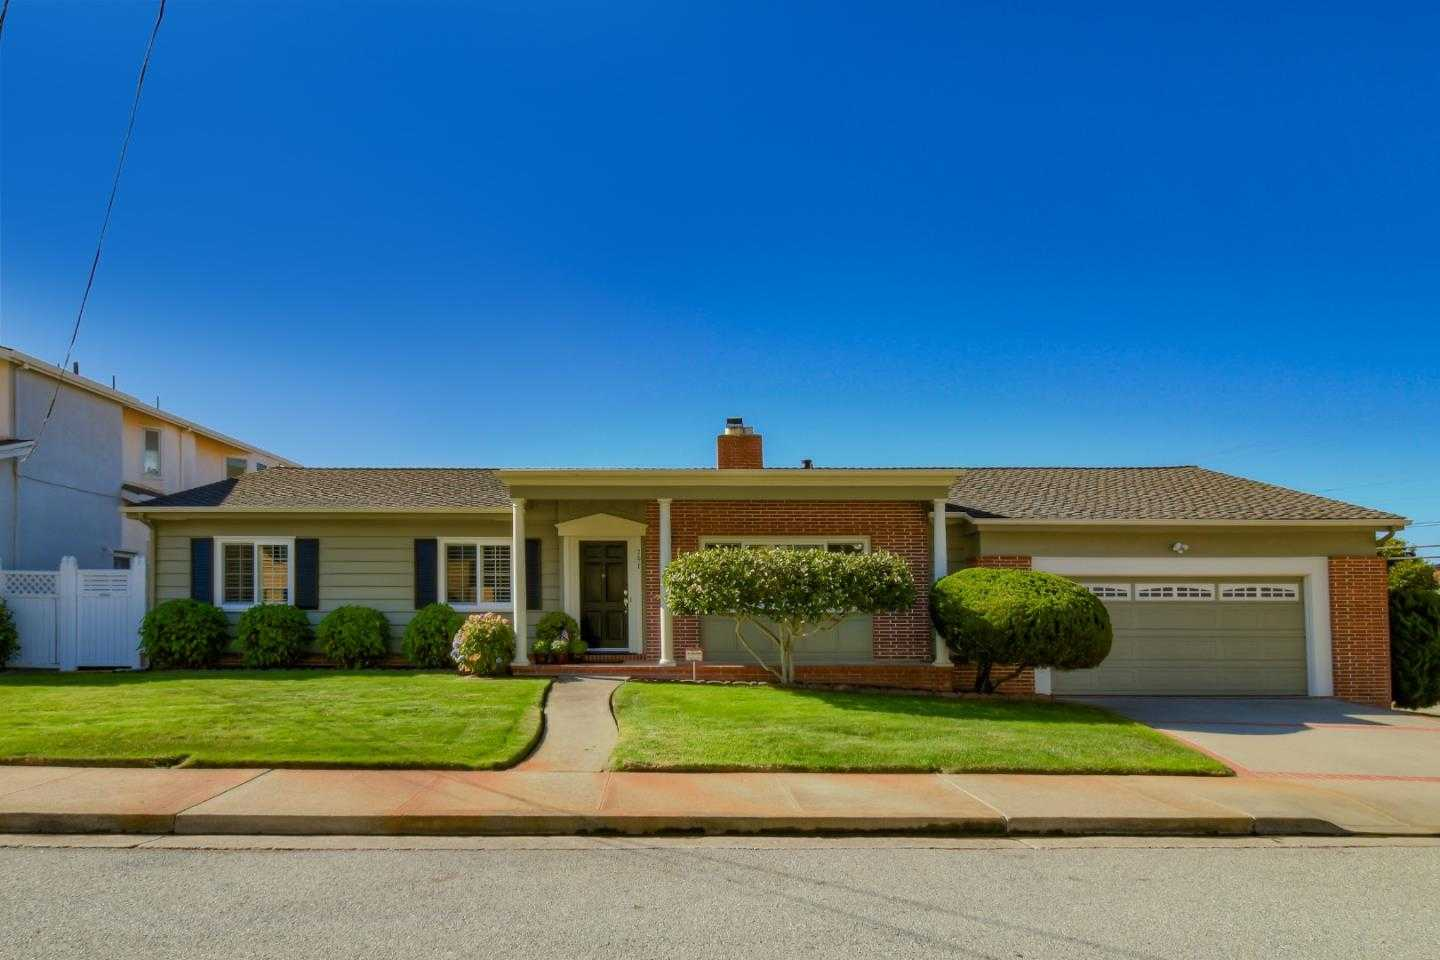 $1,288,000 - 3Br/3Ba -  for Sale in South San Francisco